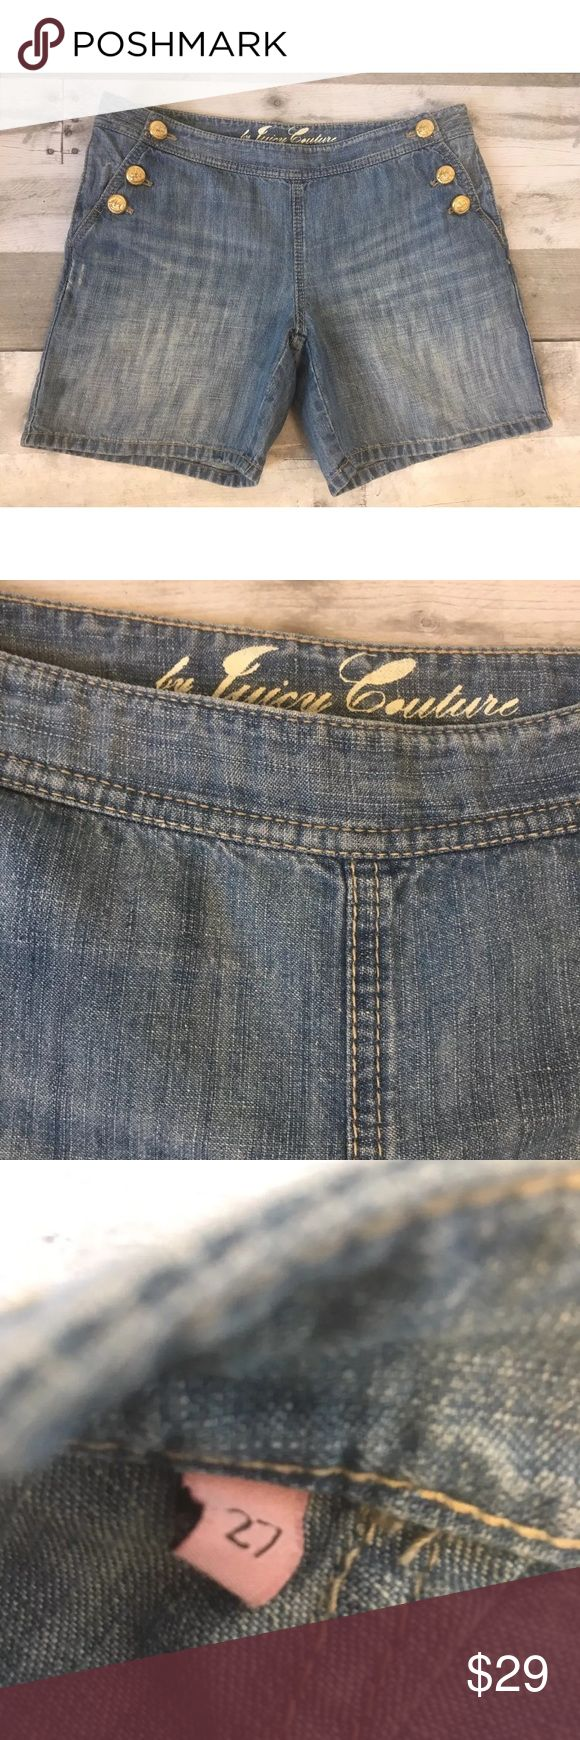 Juicy Couture Denim Light Wash Jean Shorts Juicy Couture Denim Light Wash Jean Shorts Nautical Women's Size 27   Waist. 16 inch  Inseam 5.5 inch Juicy Couture Shorts Jean Shorts